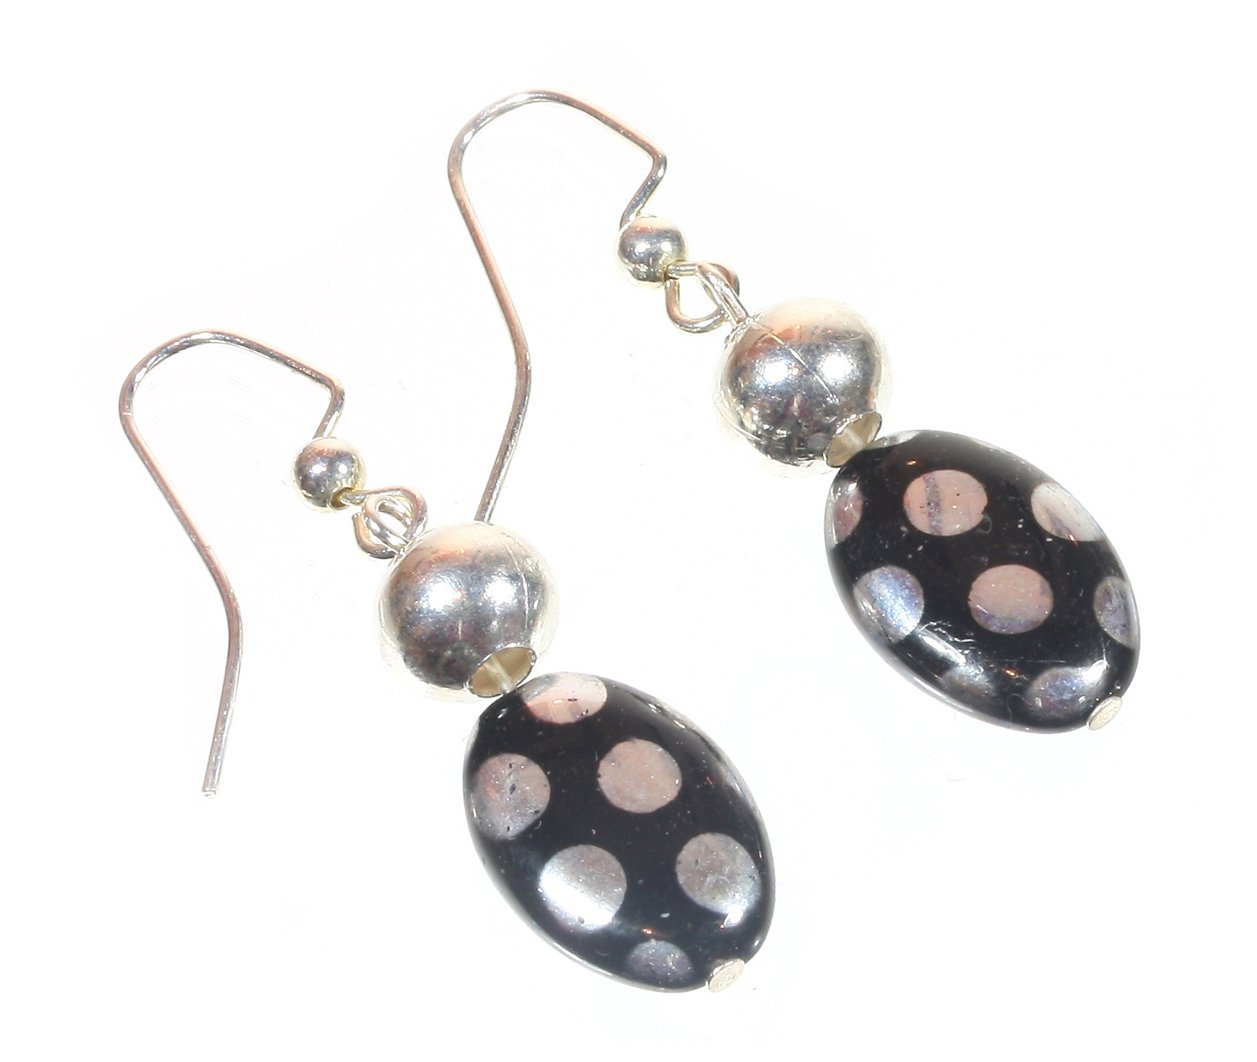 ''Ready to Dance'' Black and Silvertone Glass Bead Earrings, on French-wires, 2.0 Inches